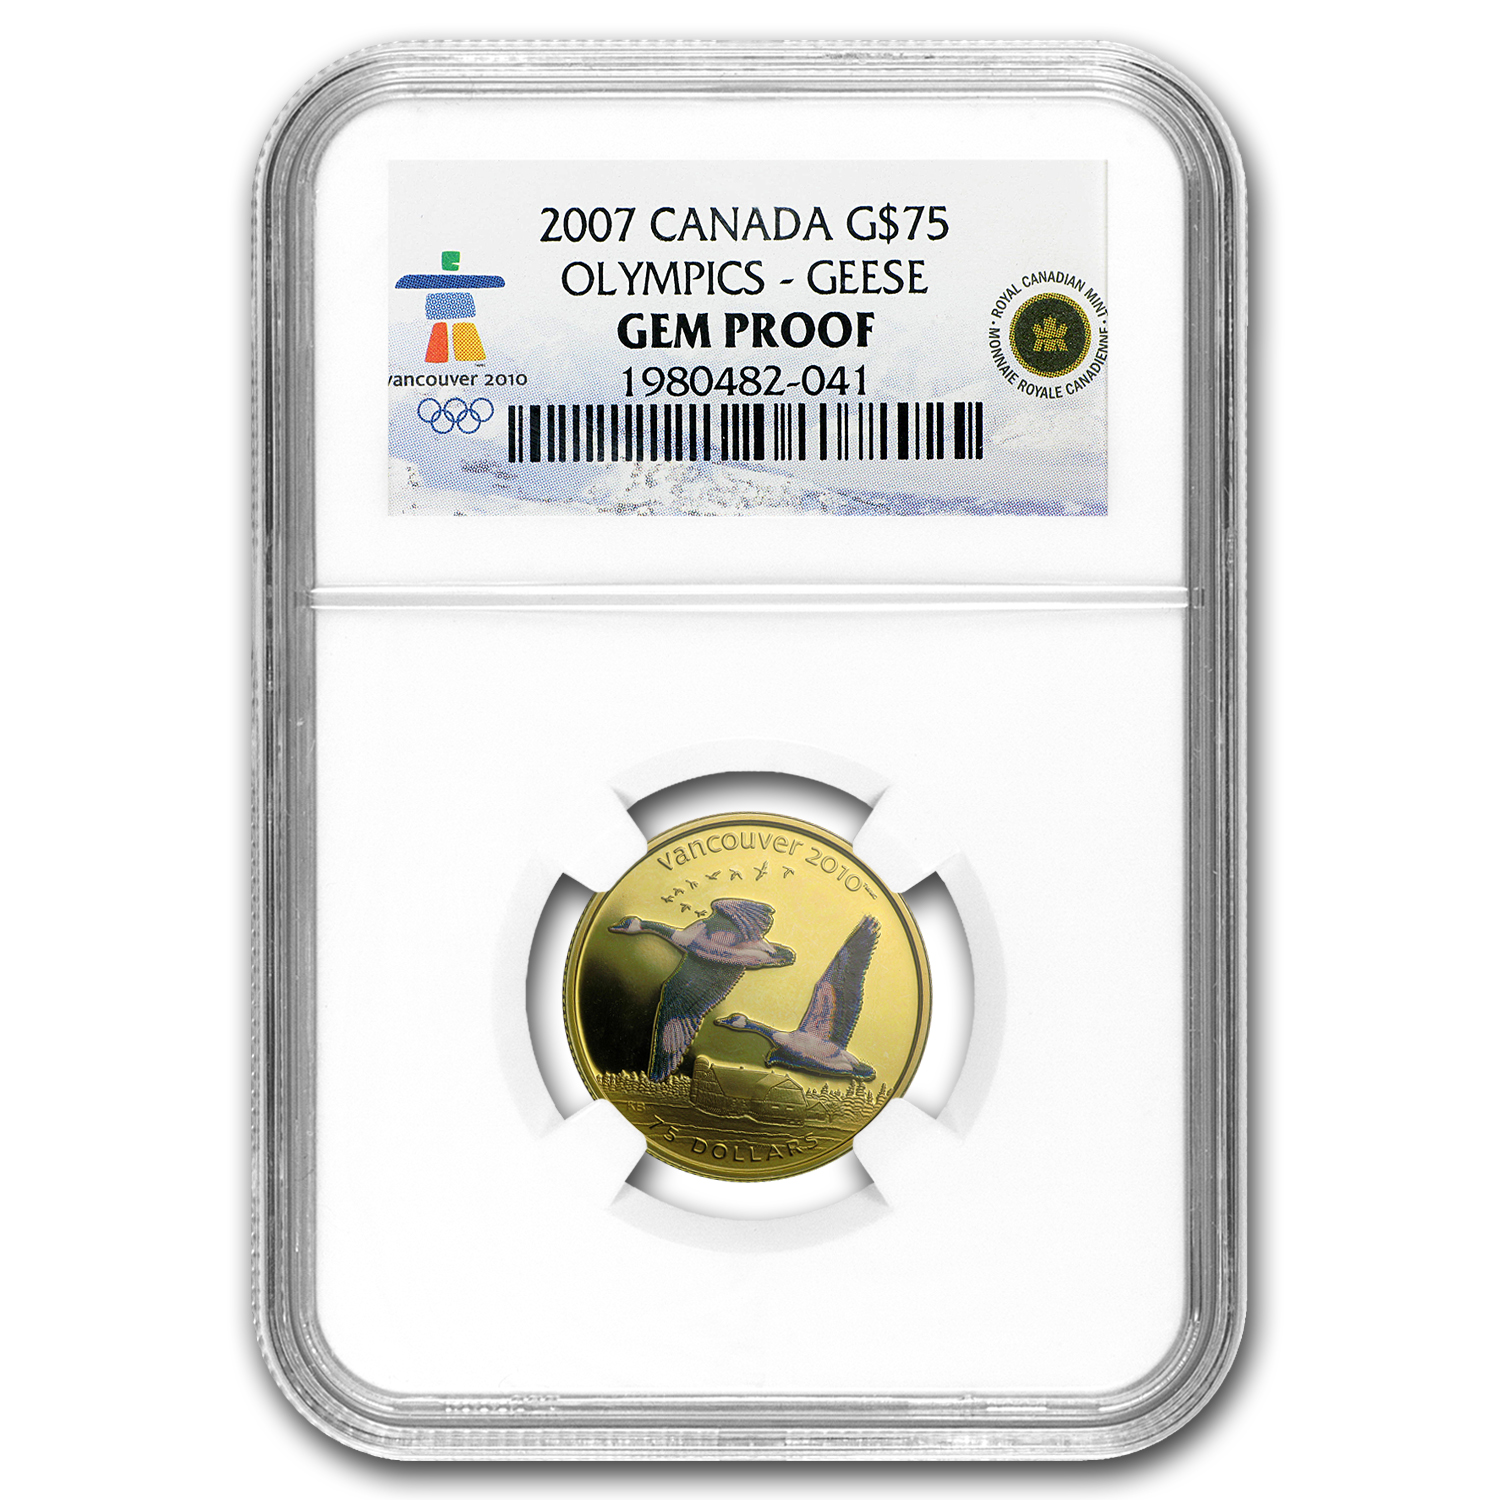 2007 Canada Gold $75 Olympics Canada Geese Gem Proof NGC